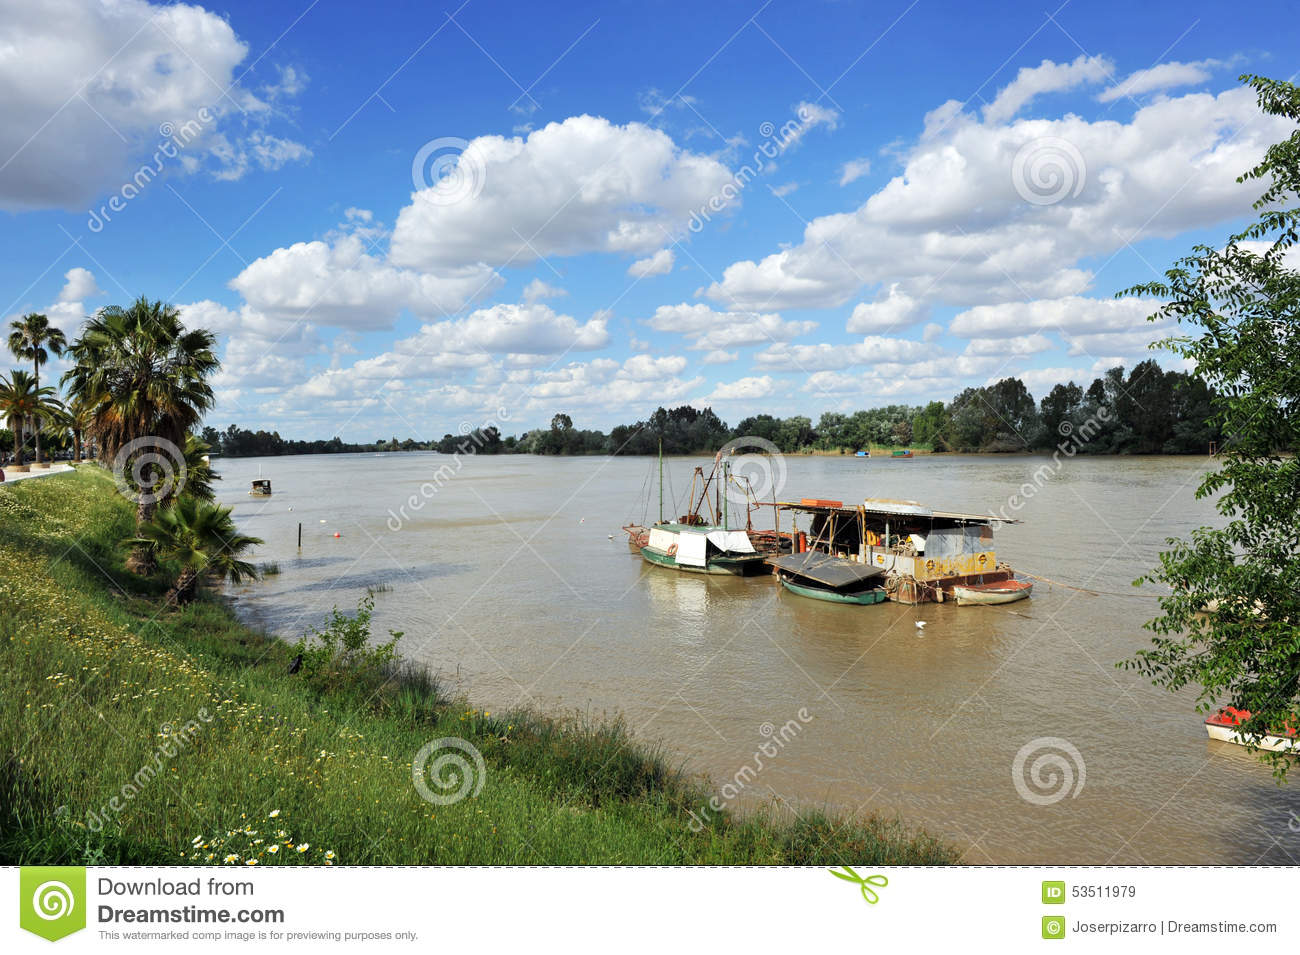 Boats on the Guadalquivir River as it passes through Coria del Rio, Seville province, Andalusia, Spain